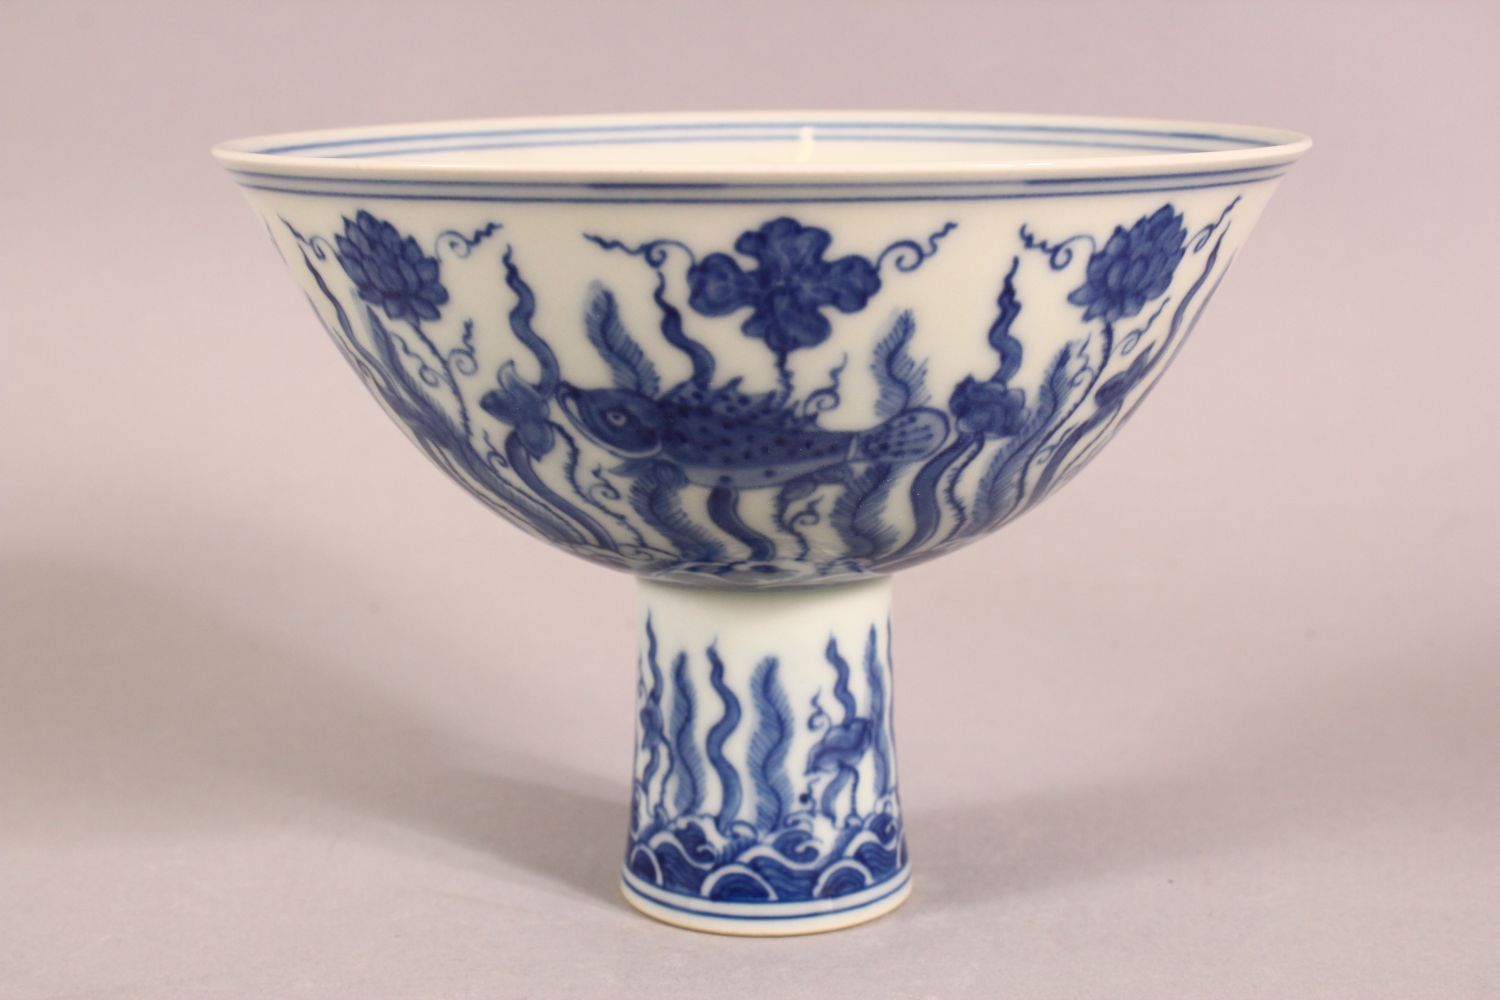 A CHINESE BLUE AND WHITE PORCELAIN STEM CUP, the bowl painted with fish amongst aquatic flora - Image 4 of 6